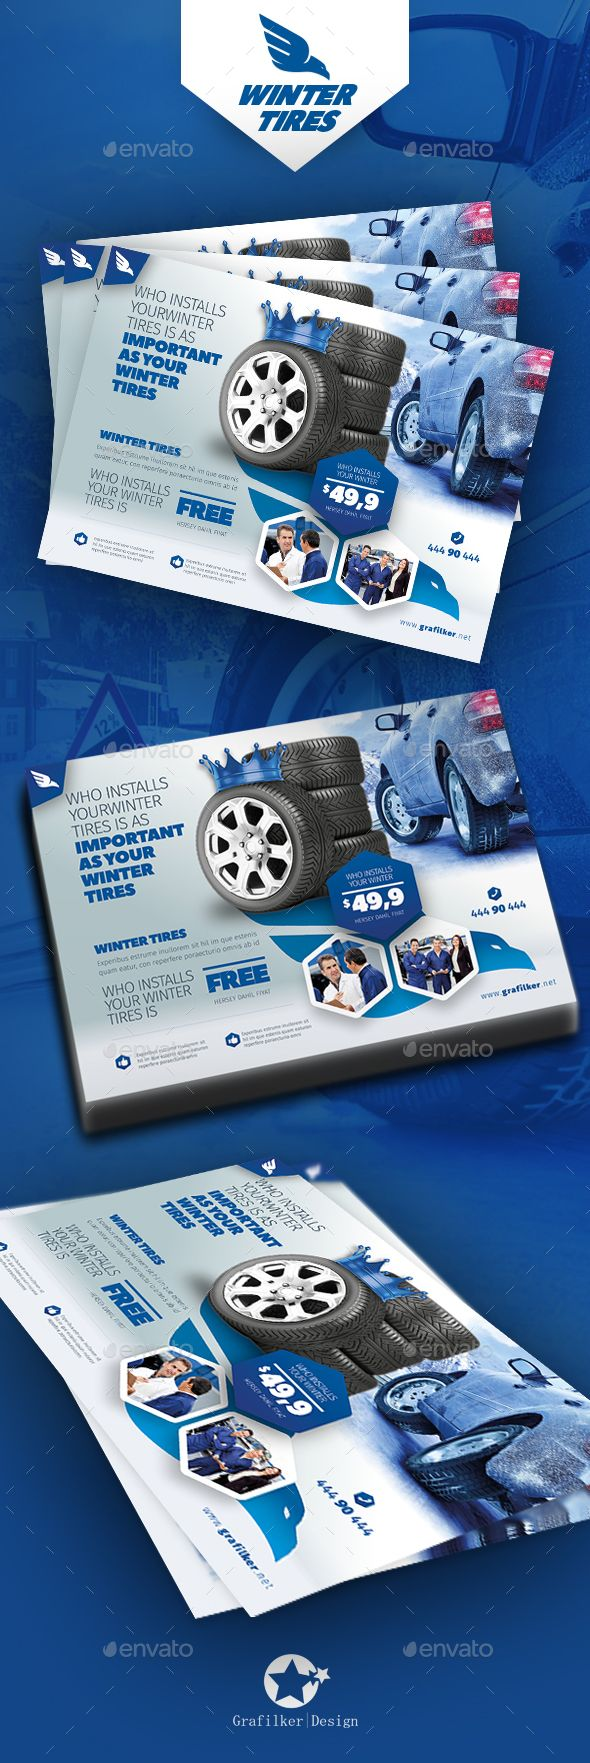 Automobile Tire Flyer Templates — PSD Template #car • Download ➝ https://graphicriver.net/item/automobile-tire-flyer-templates/18195267?ref=pxcr